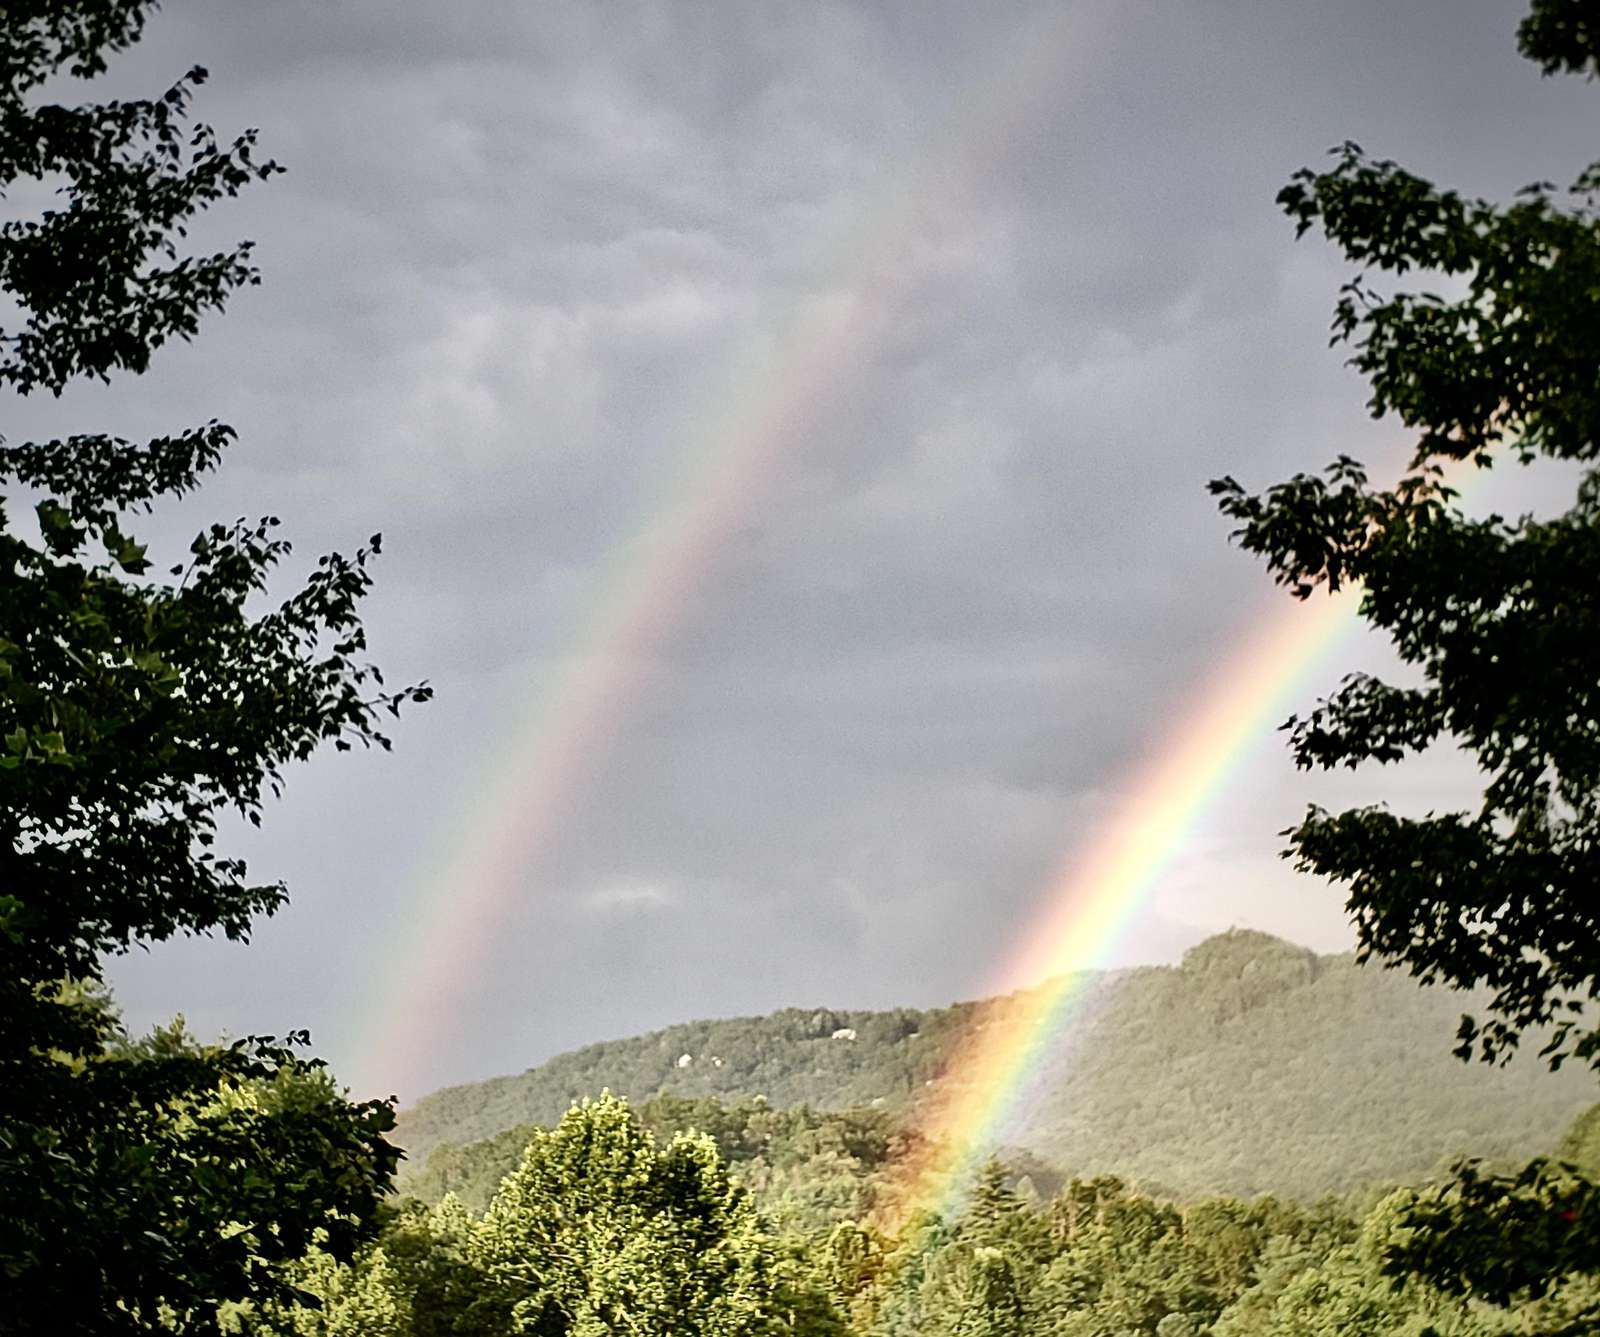 Lucky Double Rainbow photo was taken by our recent Guests. We appreciate them sharing this image with us!